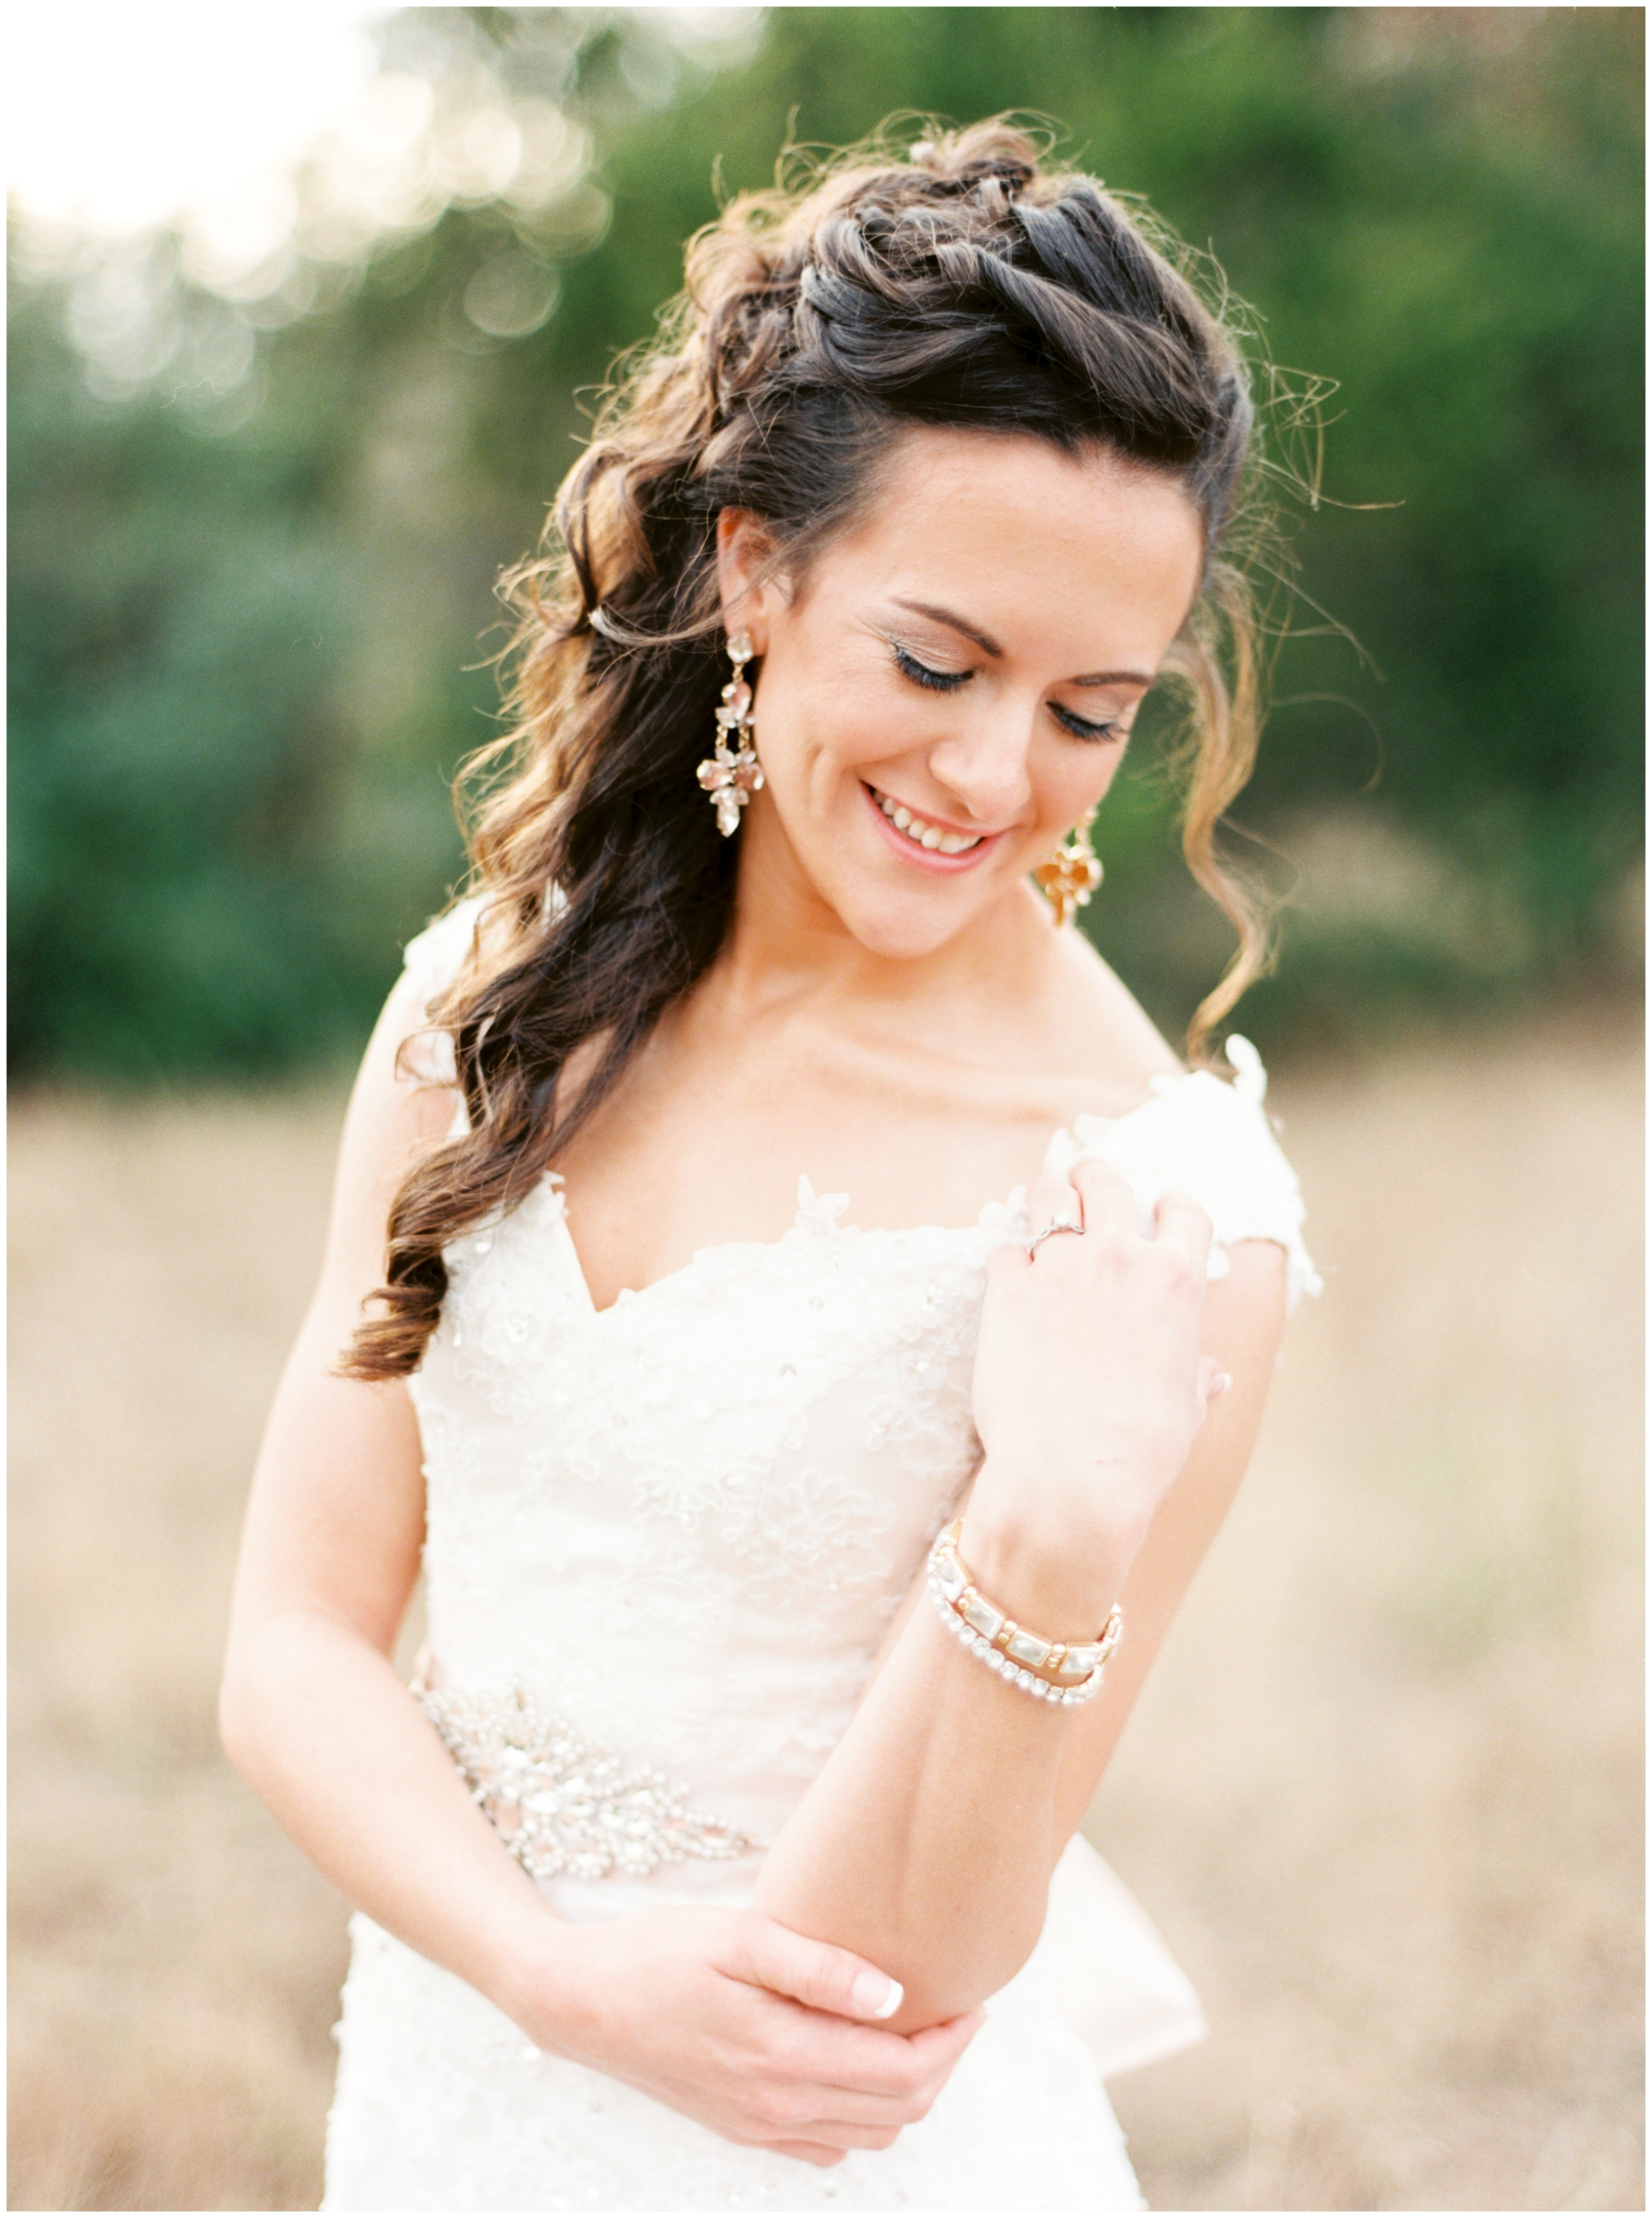 Sarah Best Photography - Emily's Bridals-140_STP.jpg